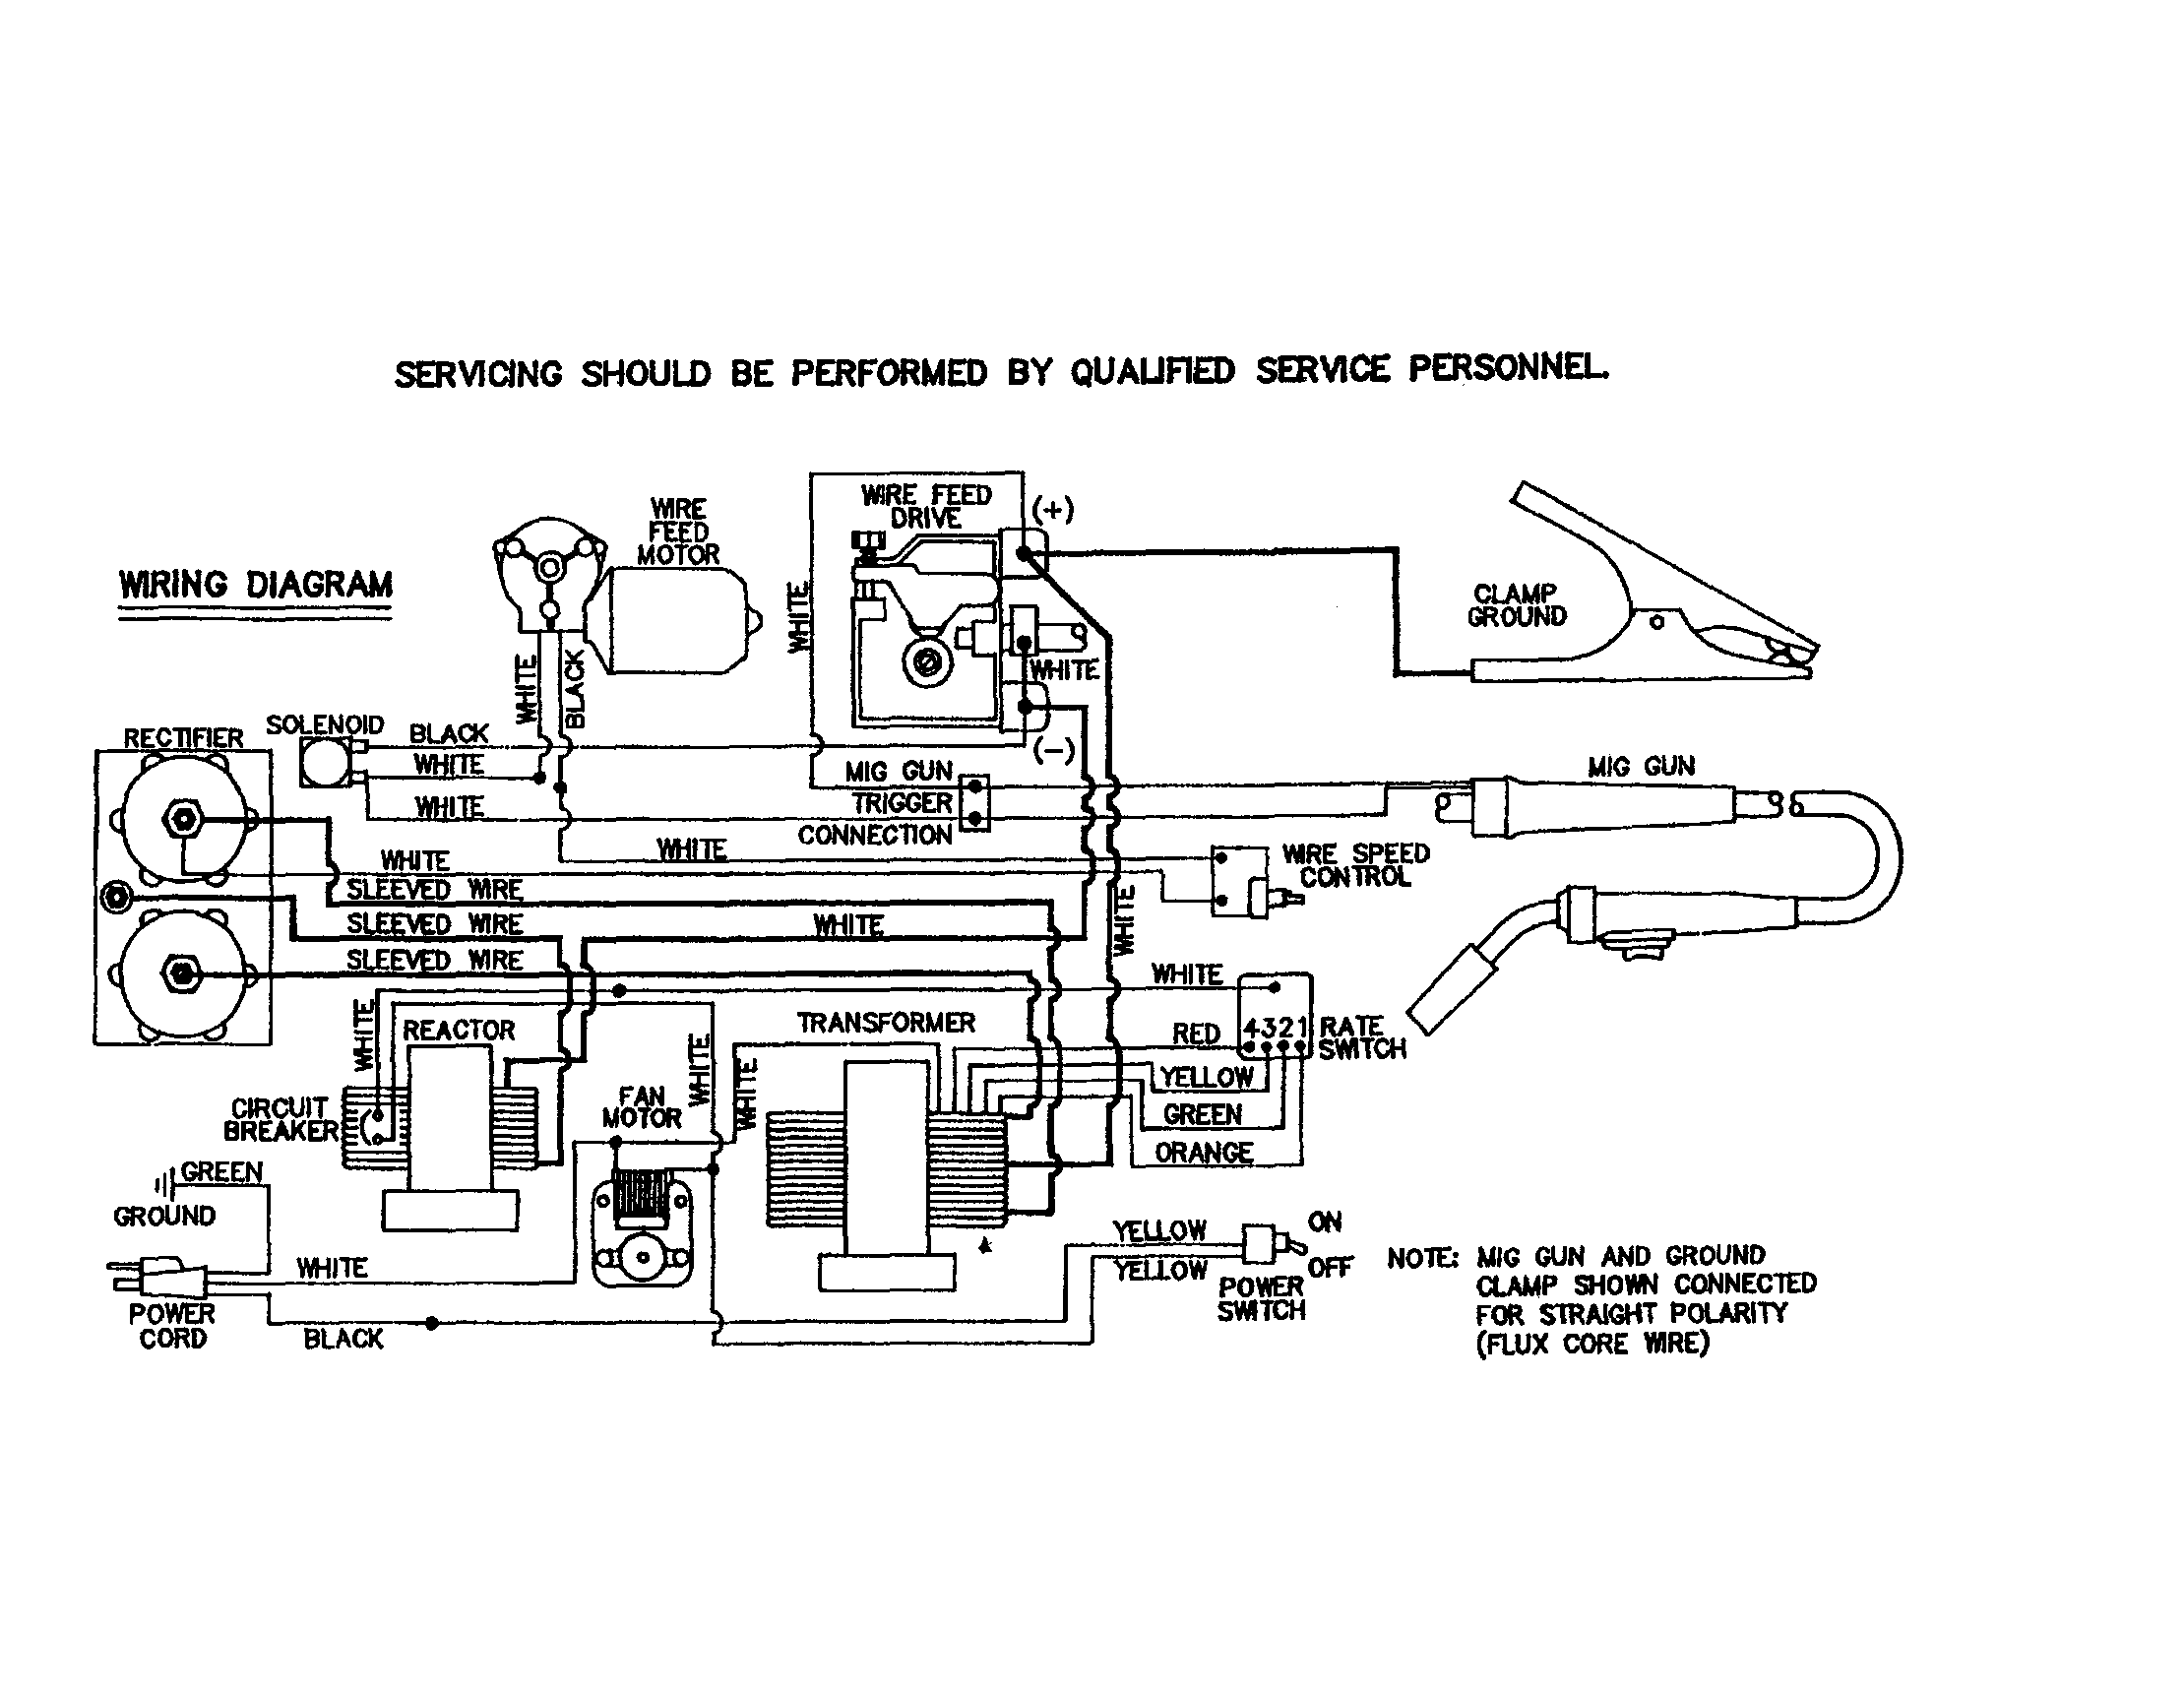 chicago electric motor wiring diagram na 8335  chicago electric motor wiring diagram free diagram  chicago electric motor wiring diagram